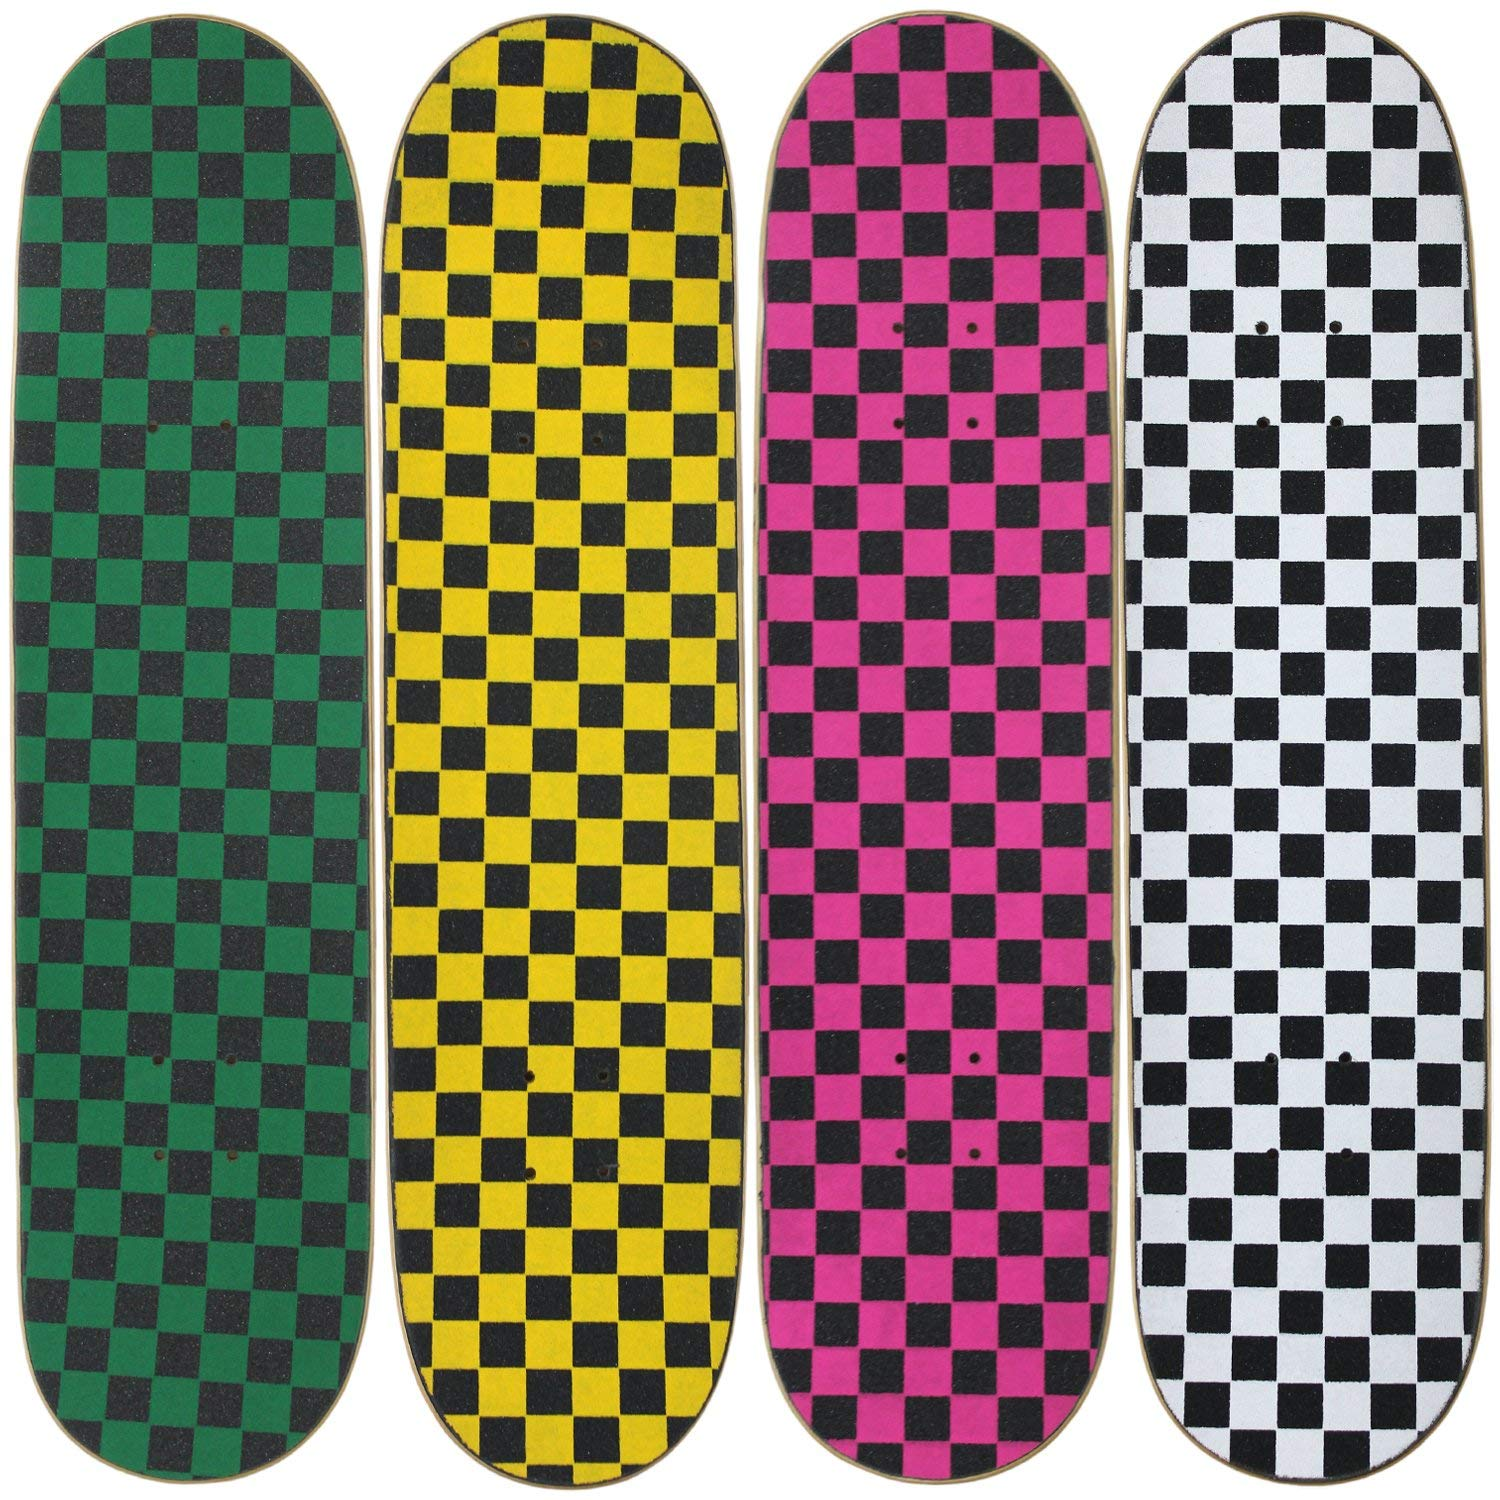 "Moose 4 Blank Skateboard Decks 8.0"" Natural Pre-Gripped Checkerboard BULK LOT"